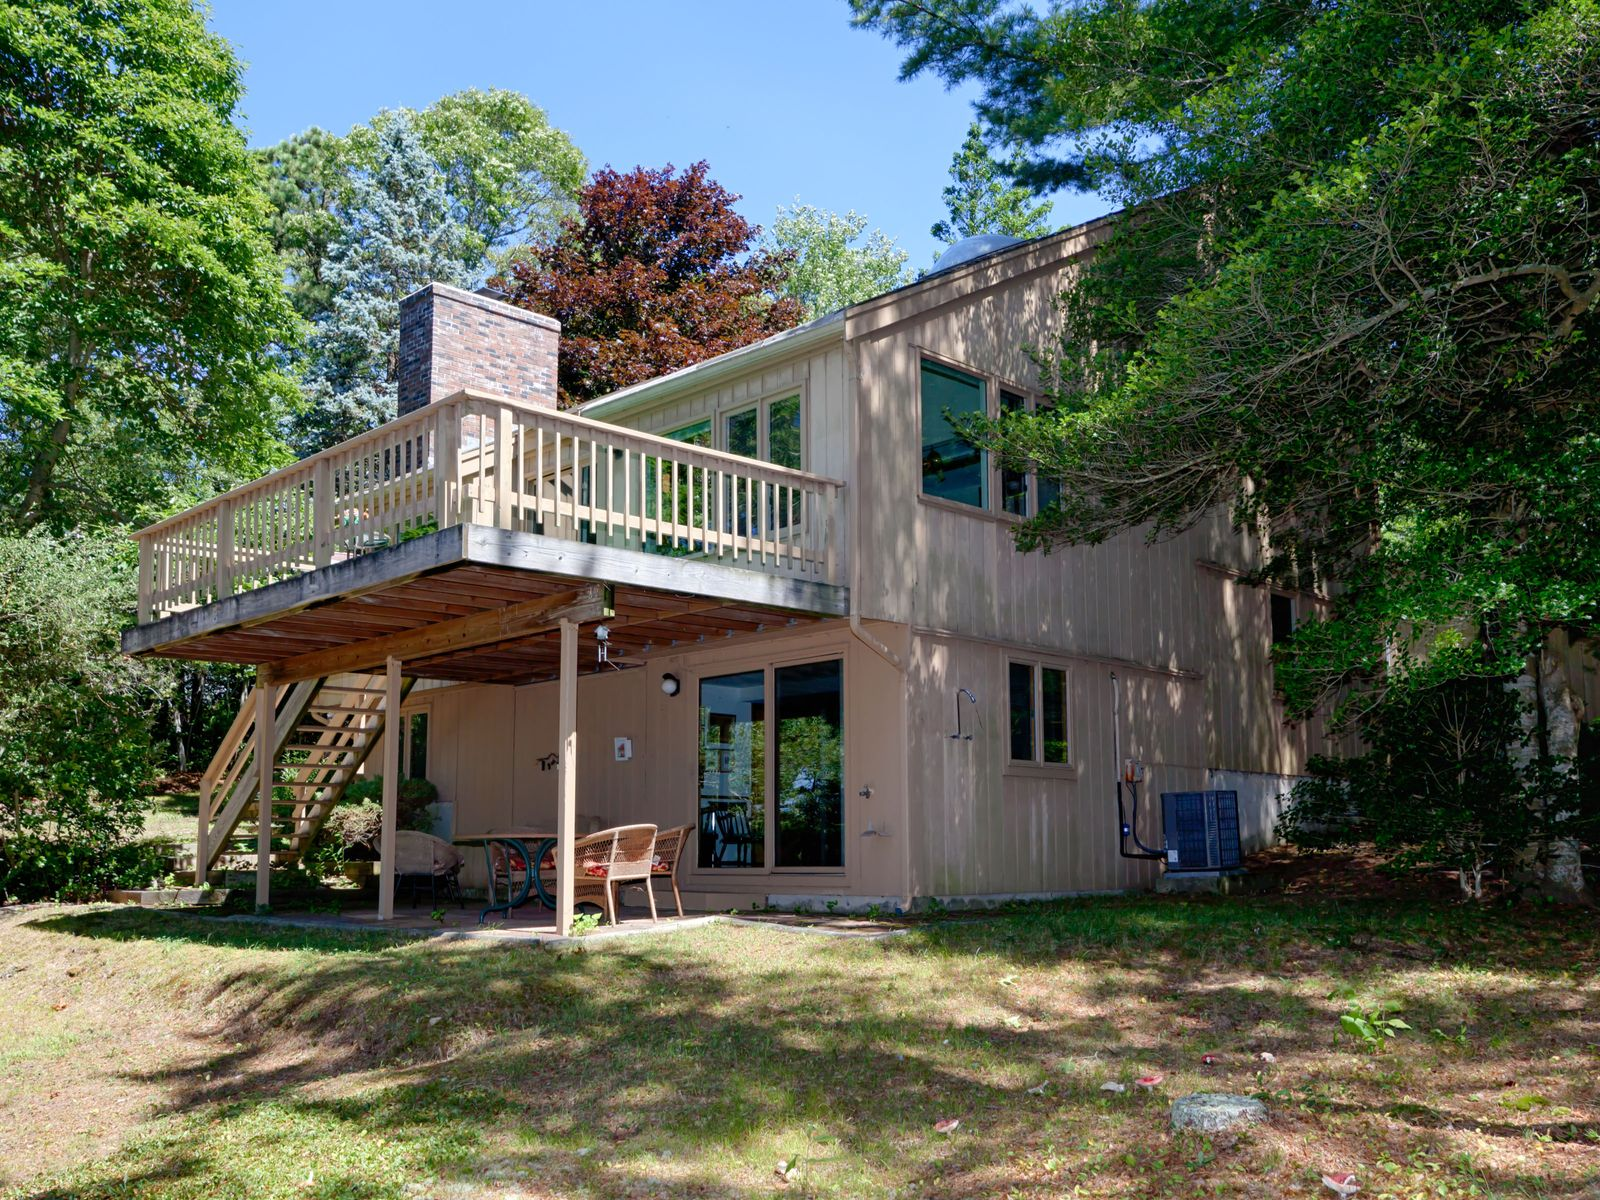 Waterfront with Hamblin's Pond Views, Marstons Mills MA Single Family Home - Cape Cod Real Estate